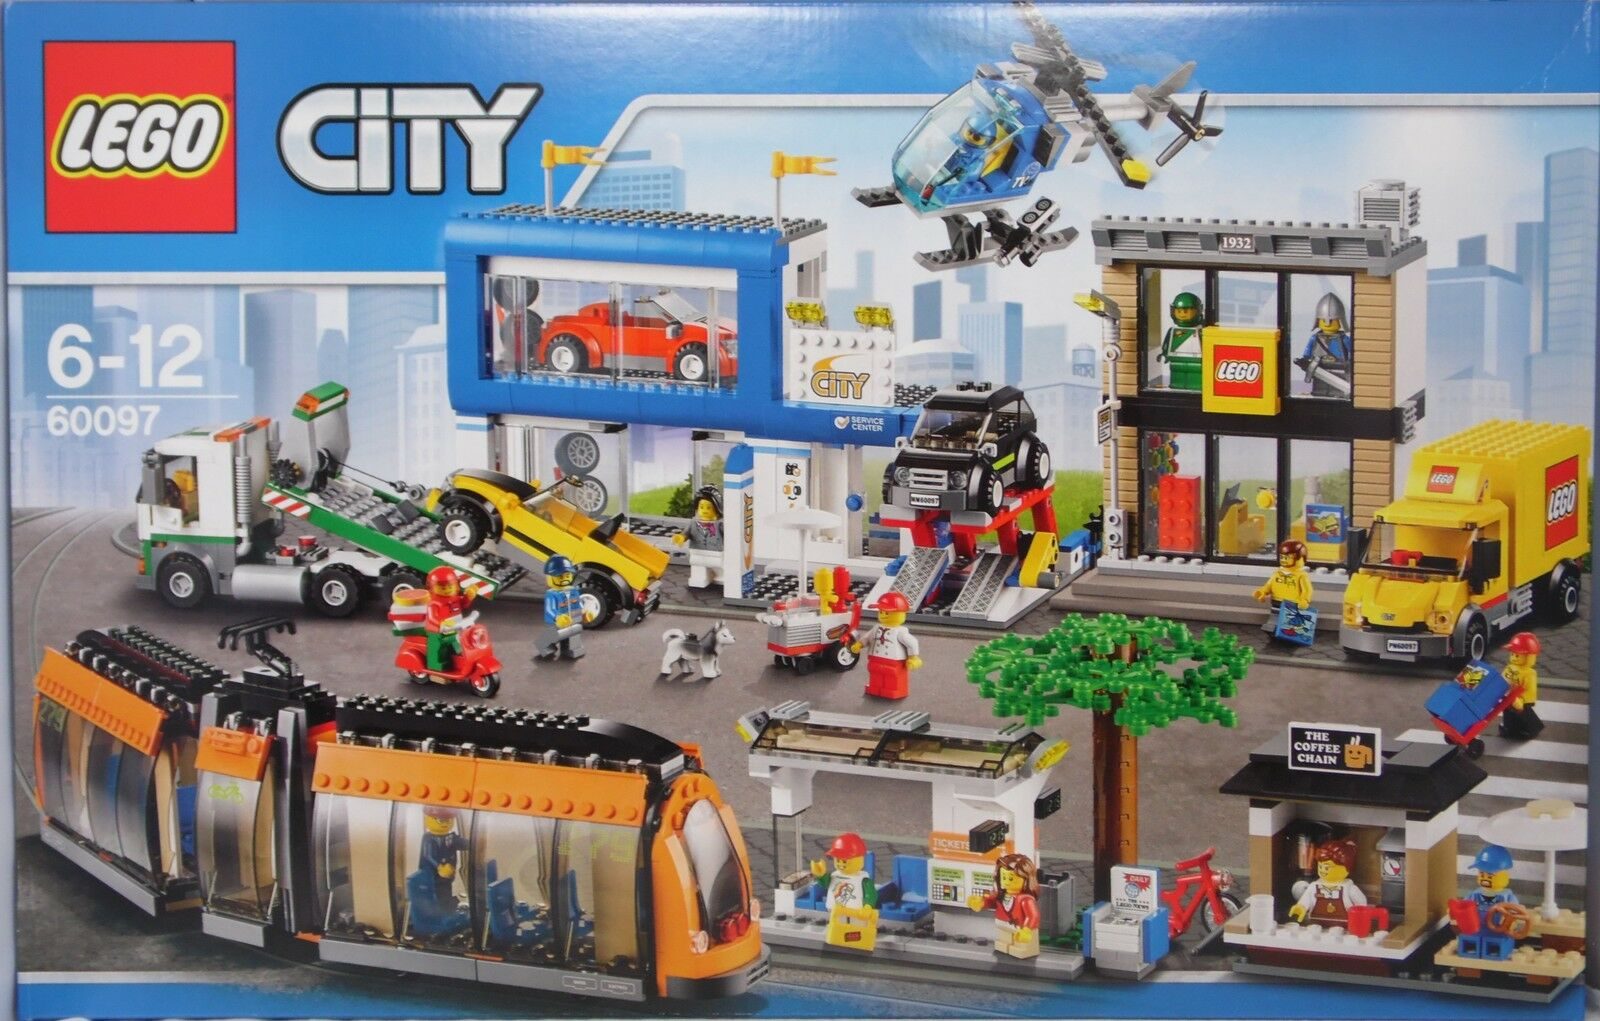 LEG City 60097 centre ville S-Bahn Heli camion Coffee-shop LEGO-Boutique Auto-Shop NEUF